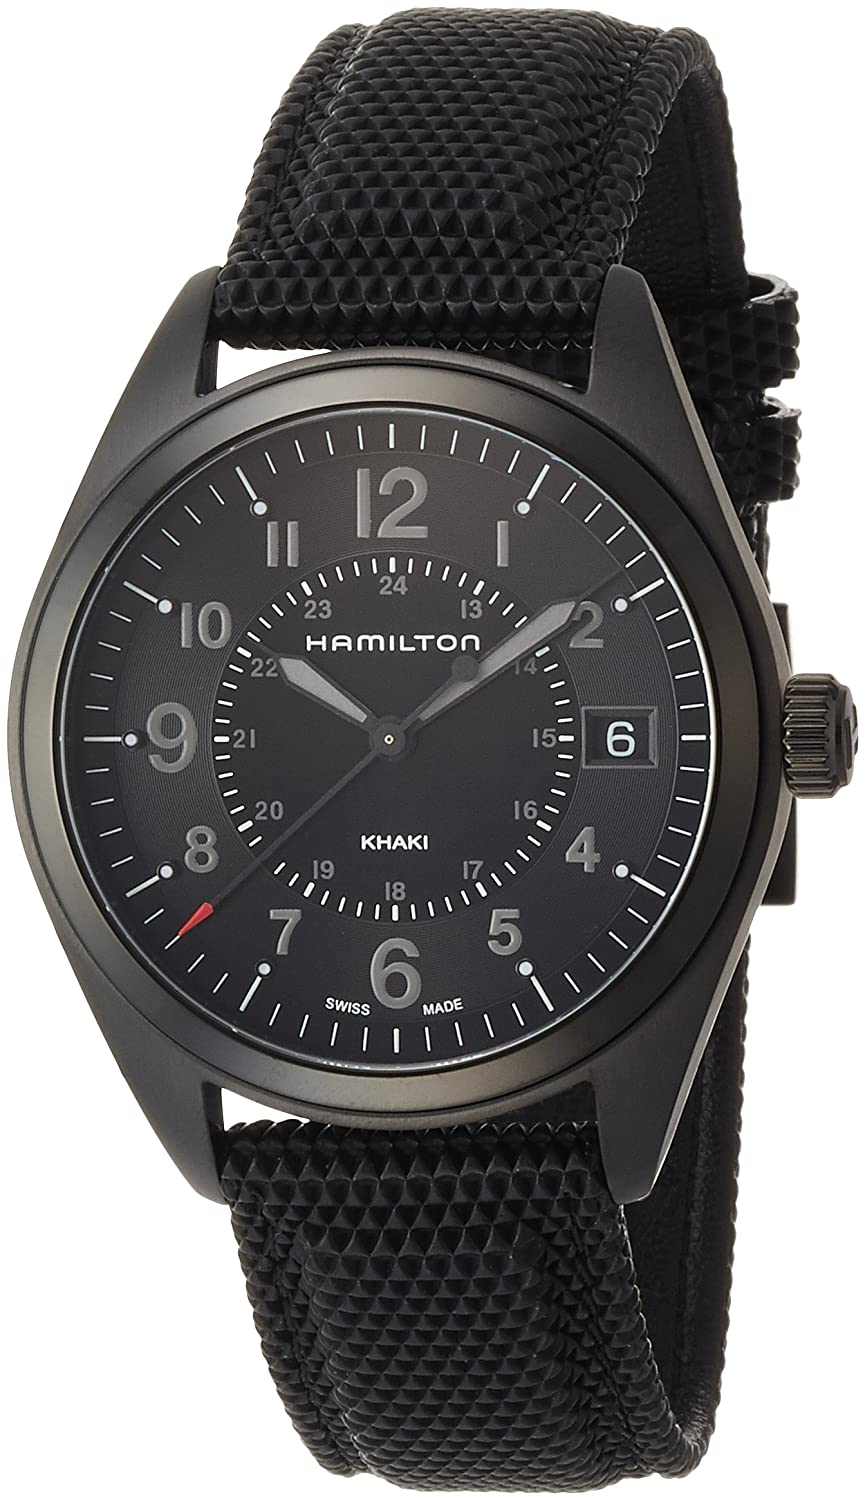 Amazon.com: Hamilton Khaki Field Quartz Black Mens Watch H68401735: Watches